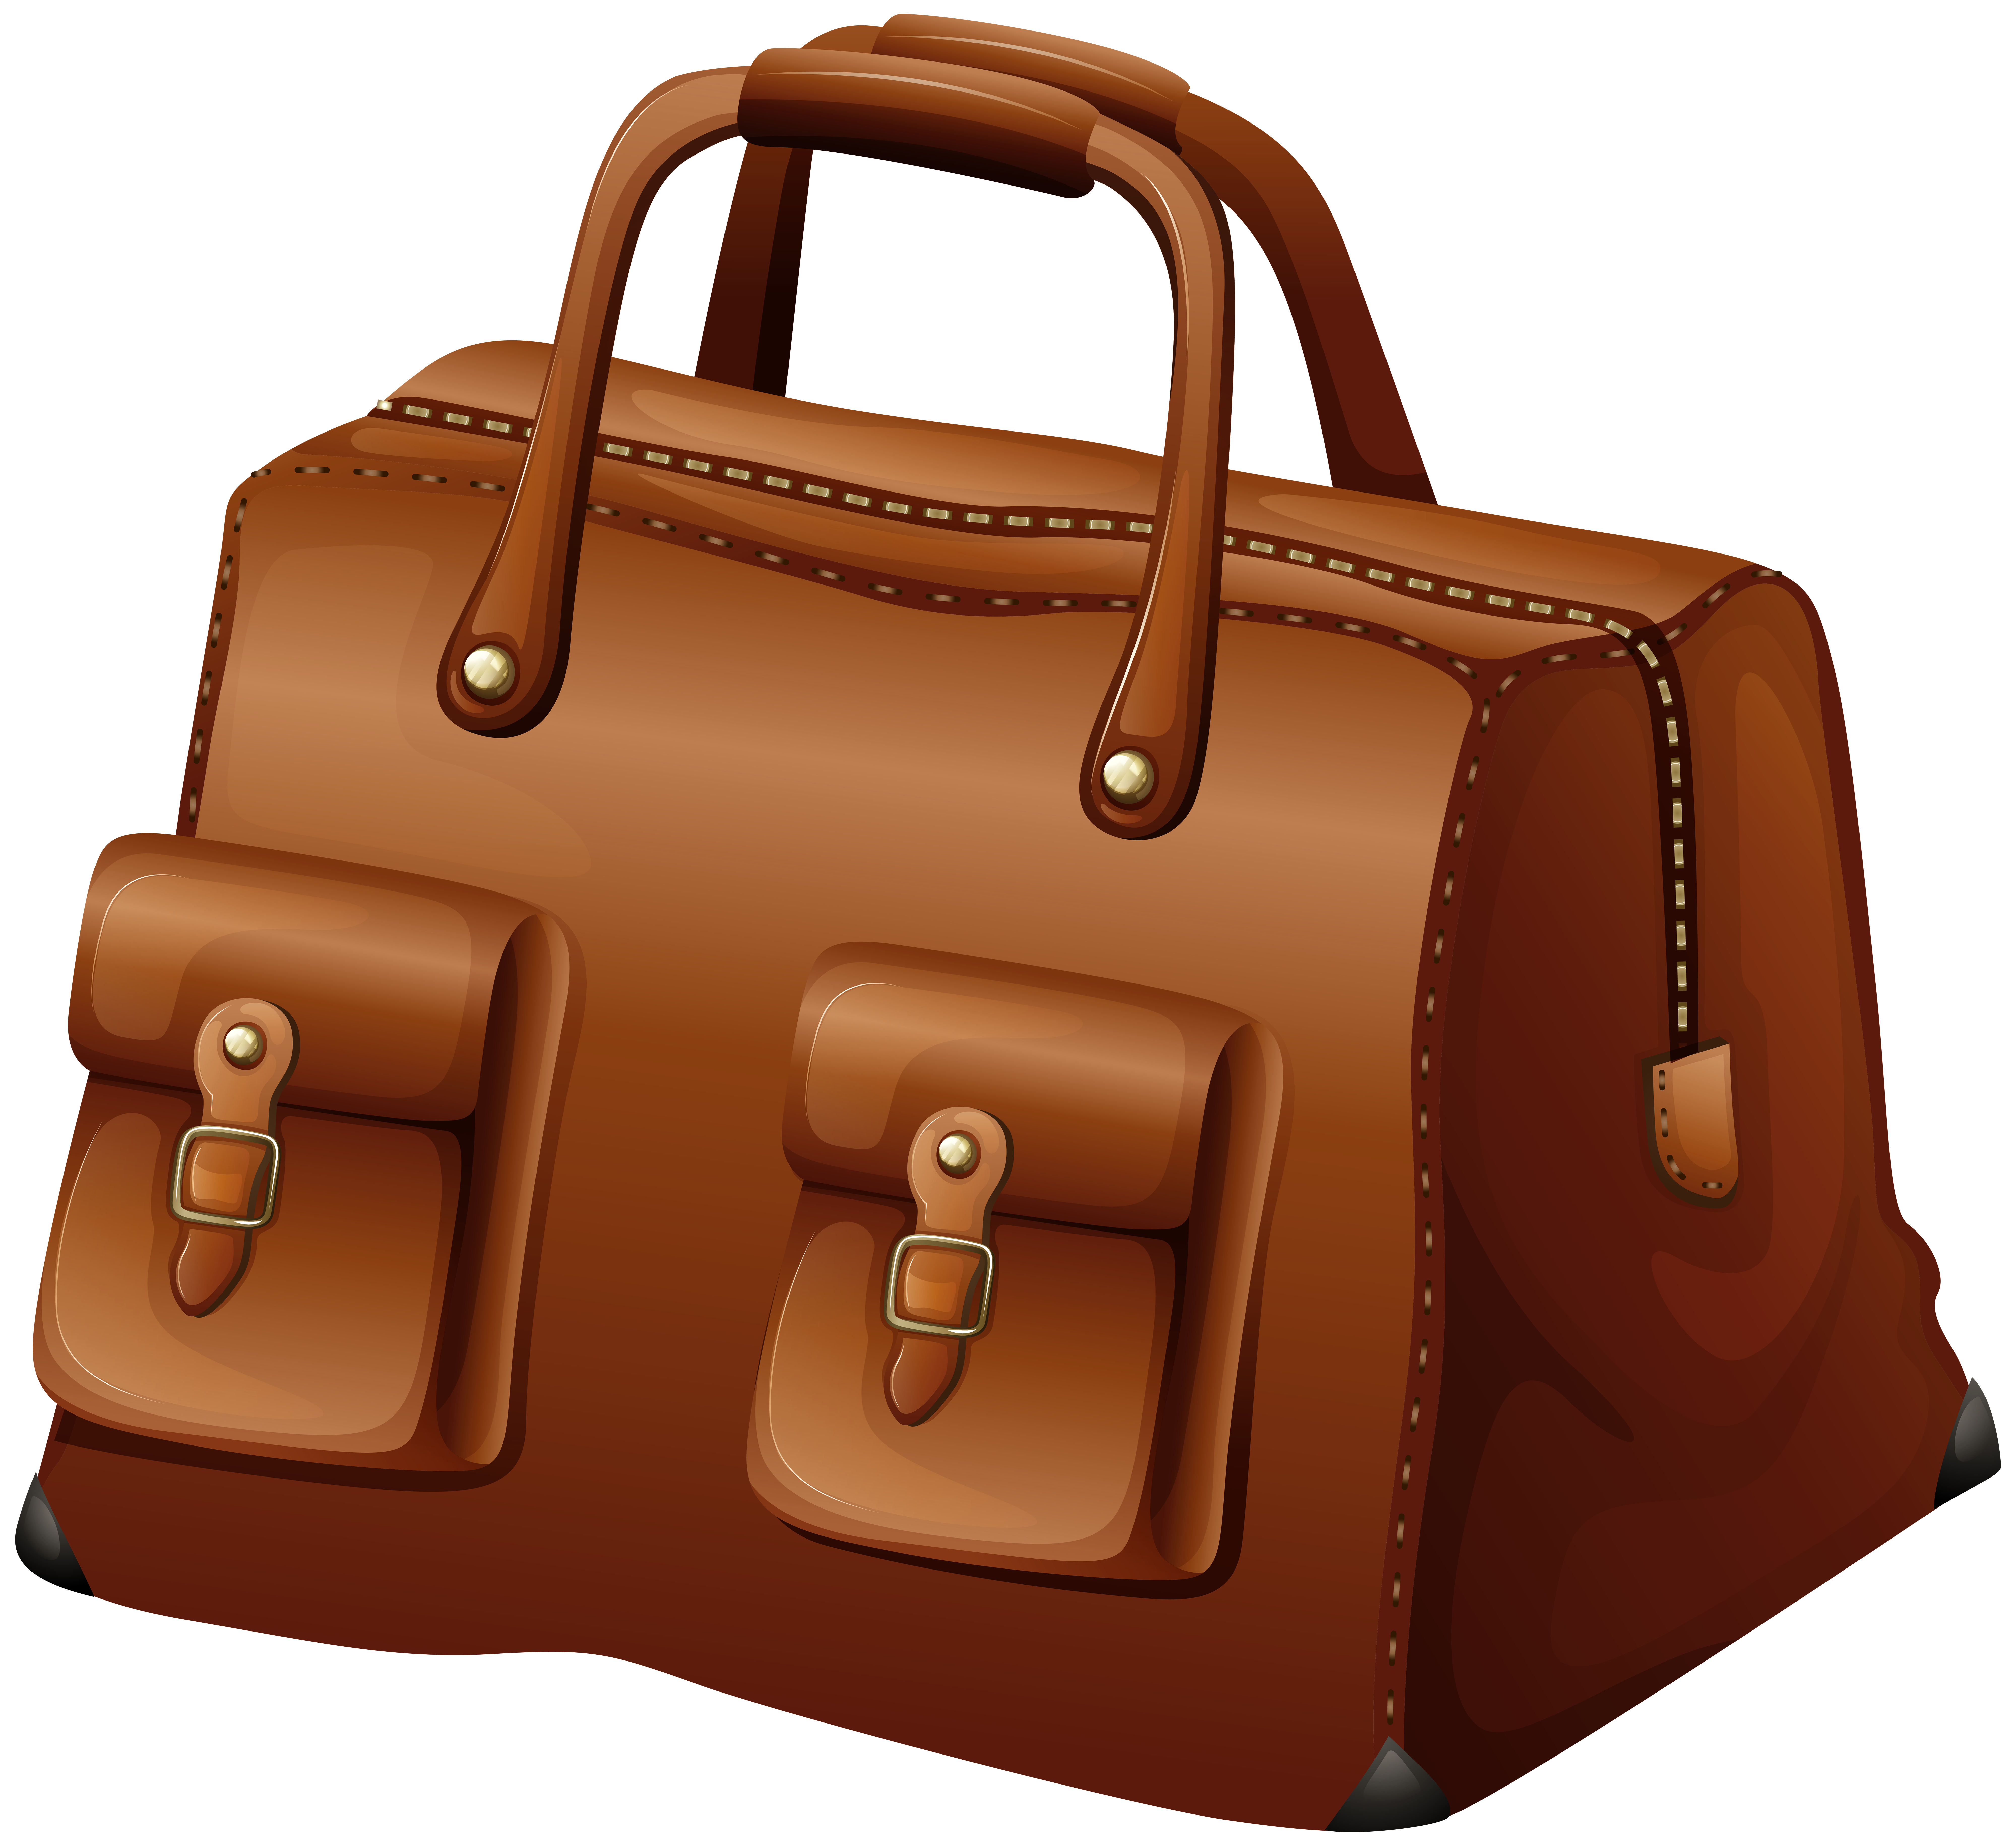 Leather clipart brown bag Image size Yopriceville Travel Clip